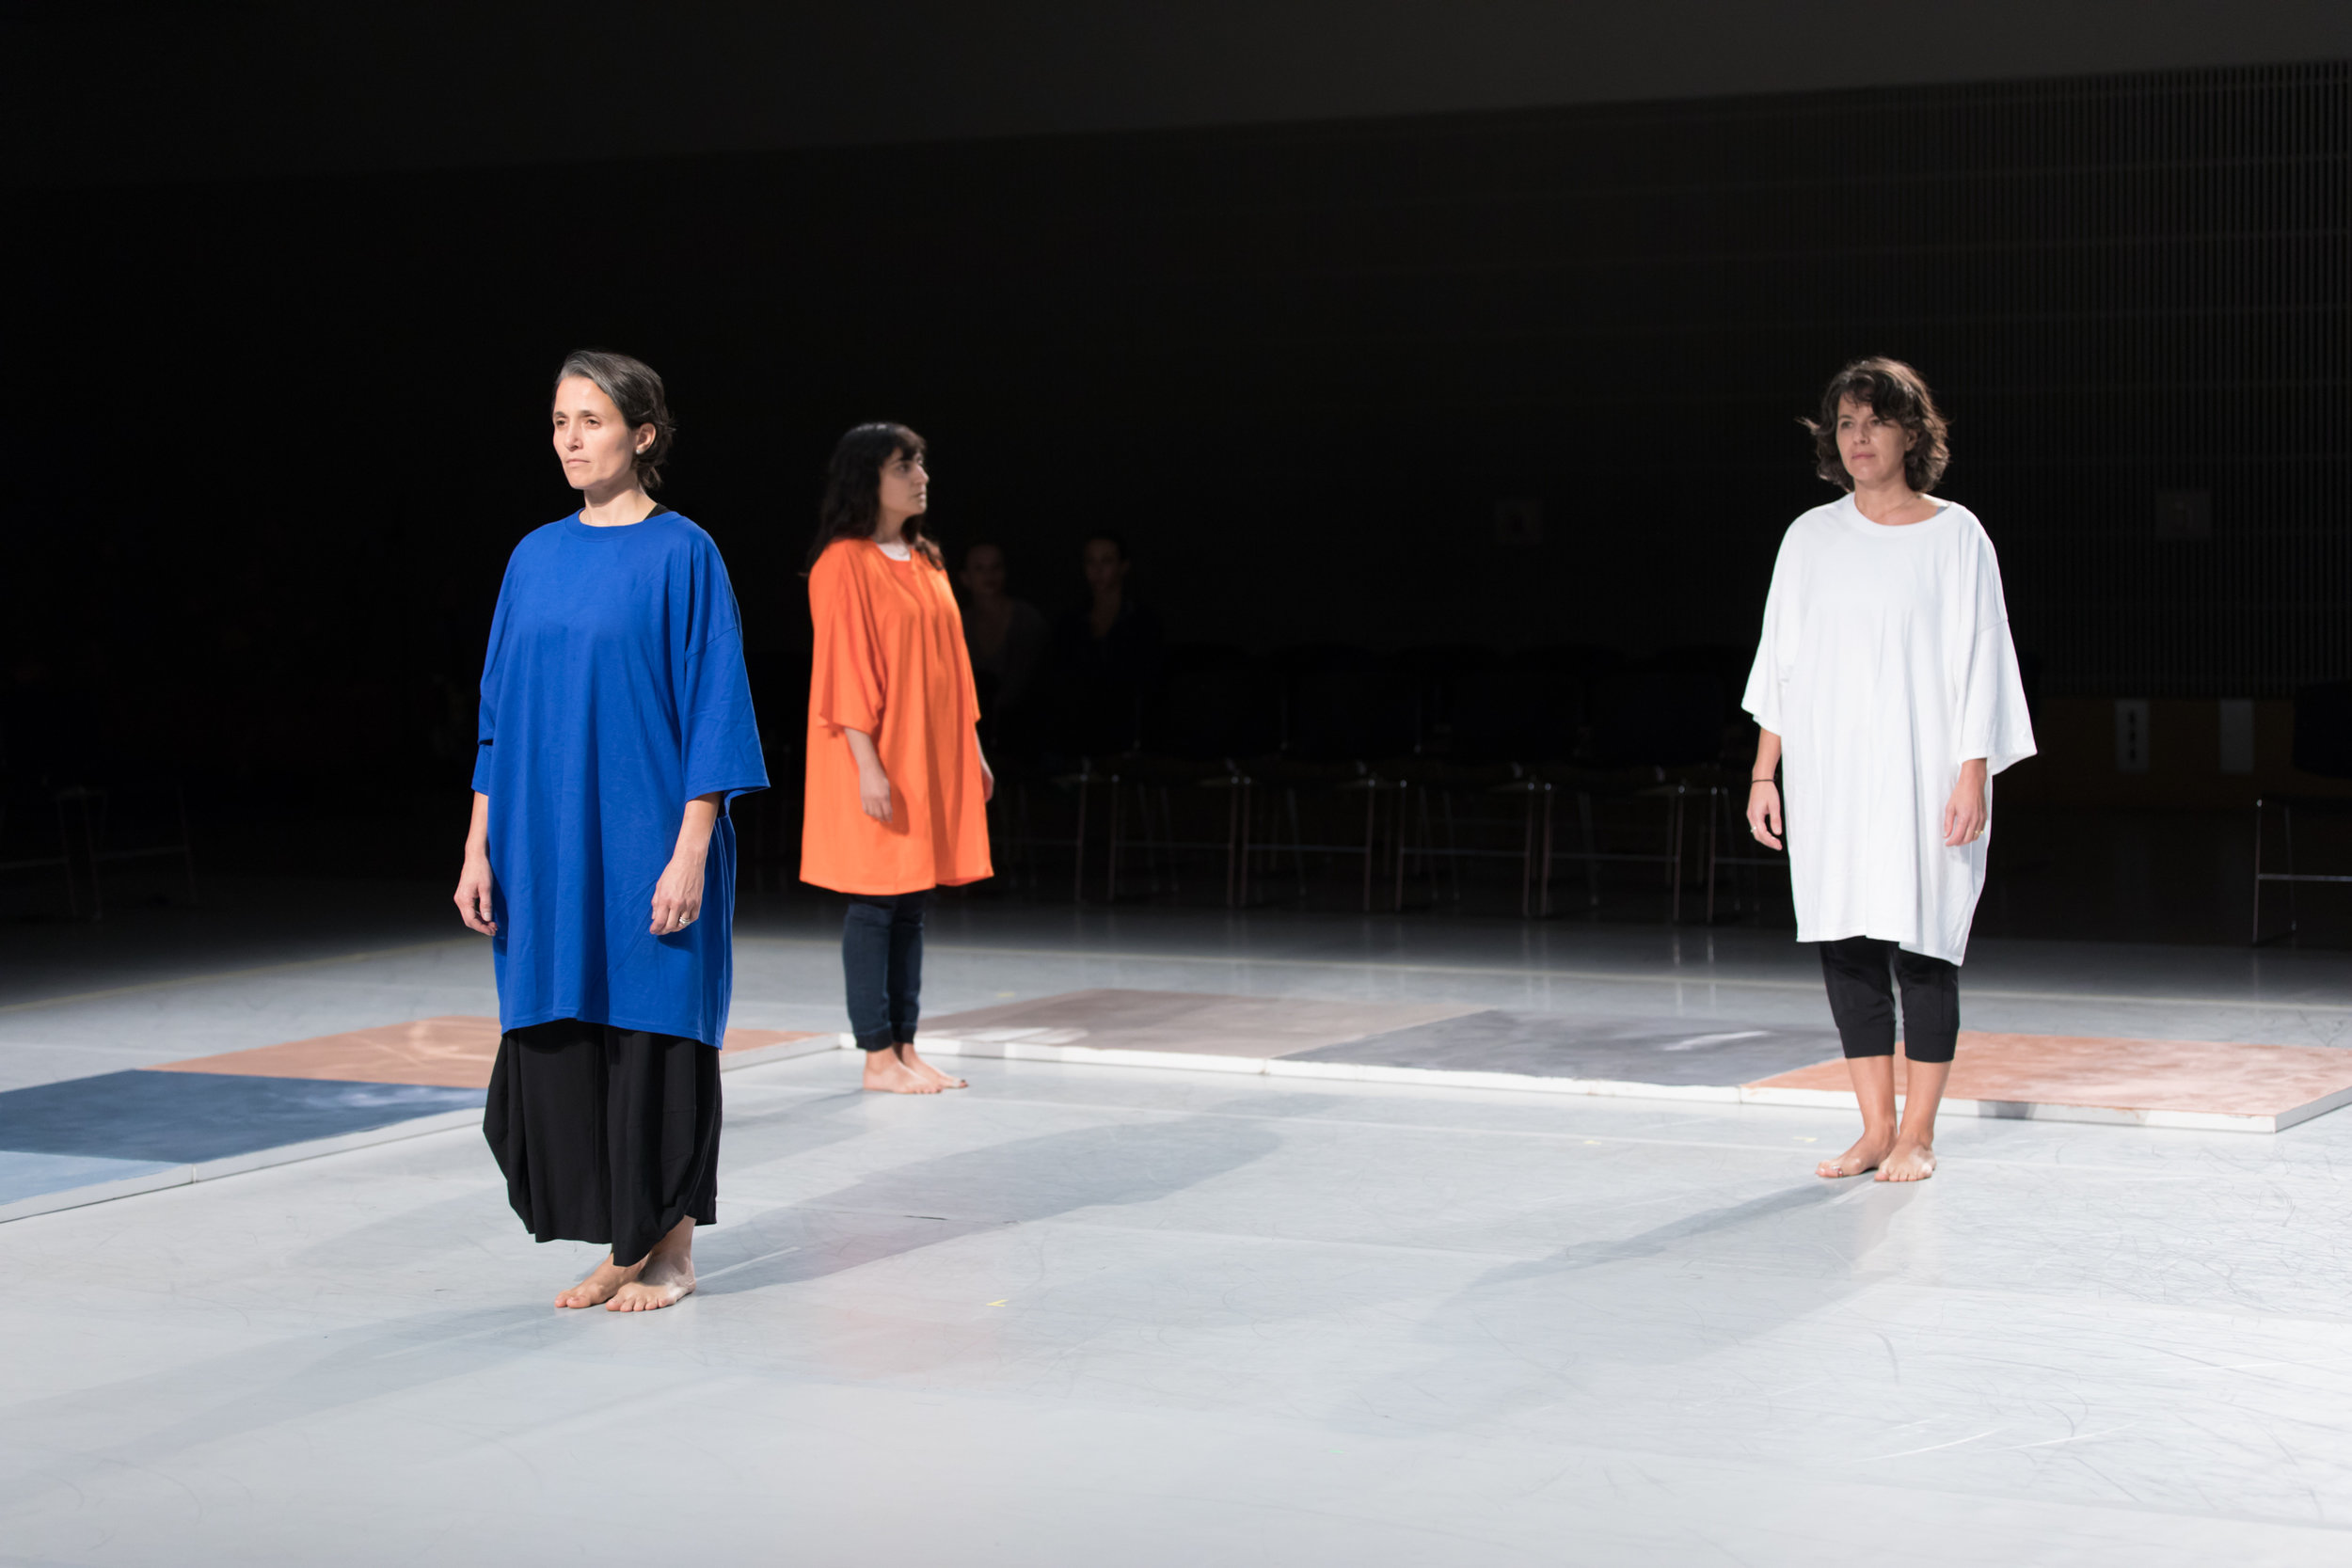 """Affinity Project performing  Color grid with talking  (after  Locus), part of """"Ten Artists Respond to  Locus. """"Featured performers (L to R): Nora el Samahy, Atossa Babaoff, Bea Basso. Photo by Margo Moritz."""